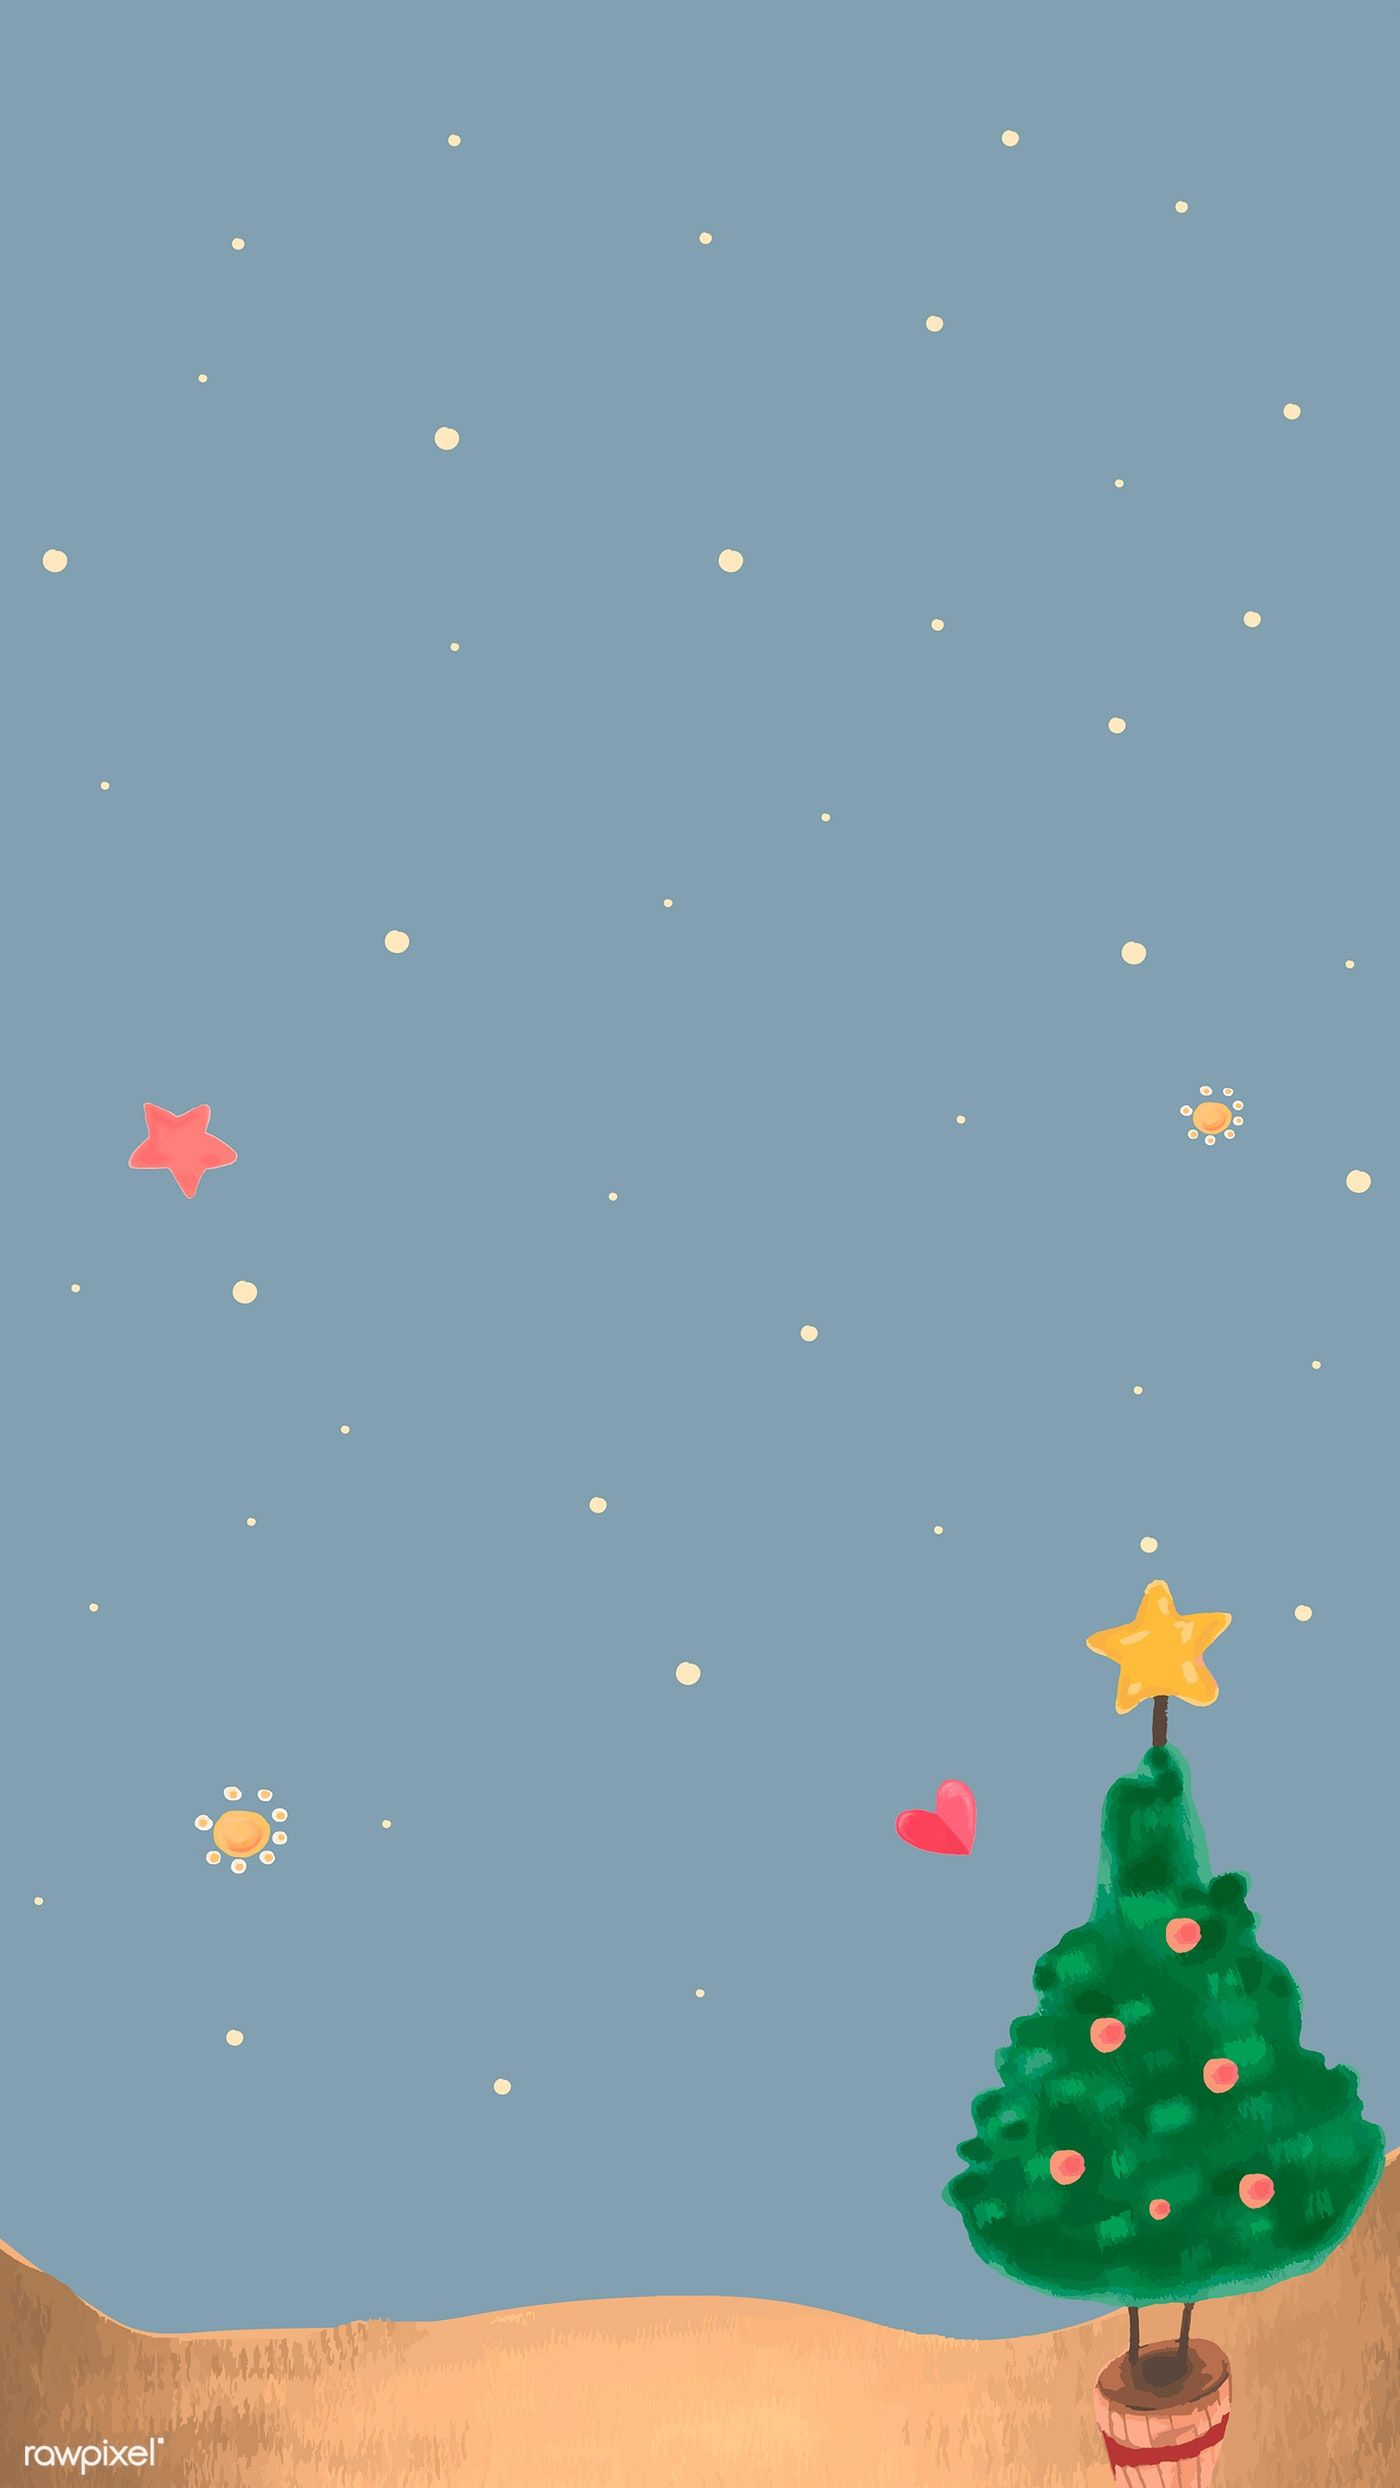 Download Premium Vector Of Cute Christmas Tree At Night Background Mobile Christmas Phone Wallpaper Merry Christmas Wallpaper Wallpaper Iphone Christmas